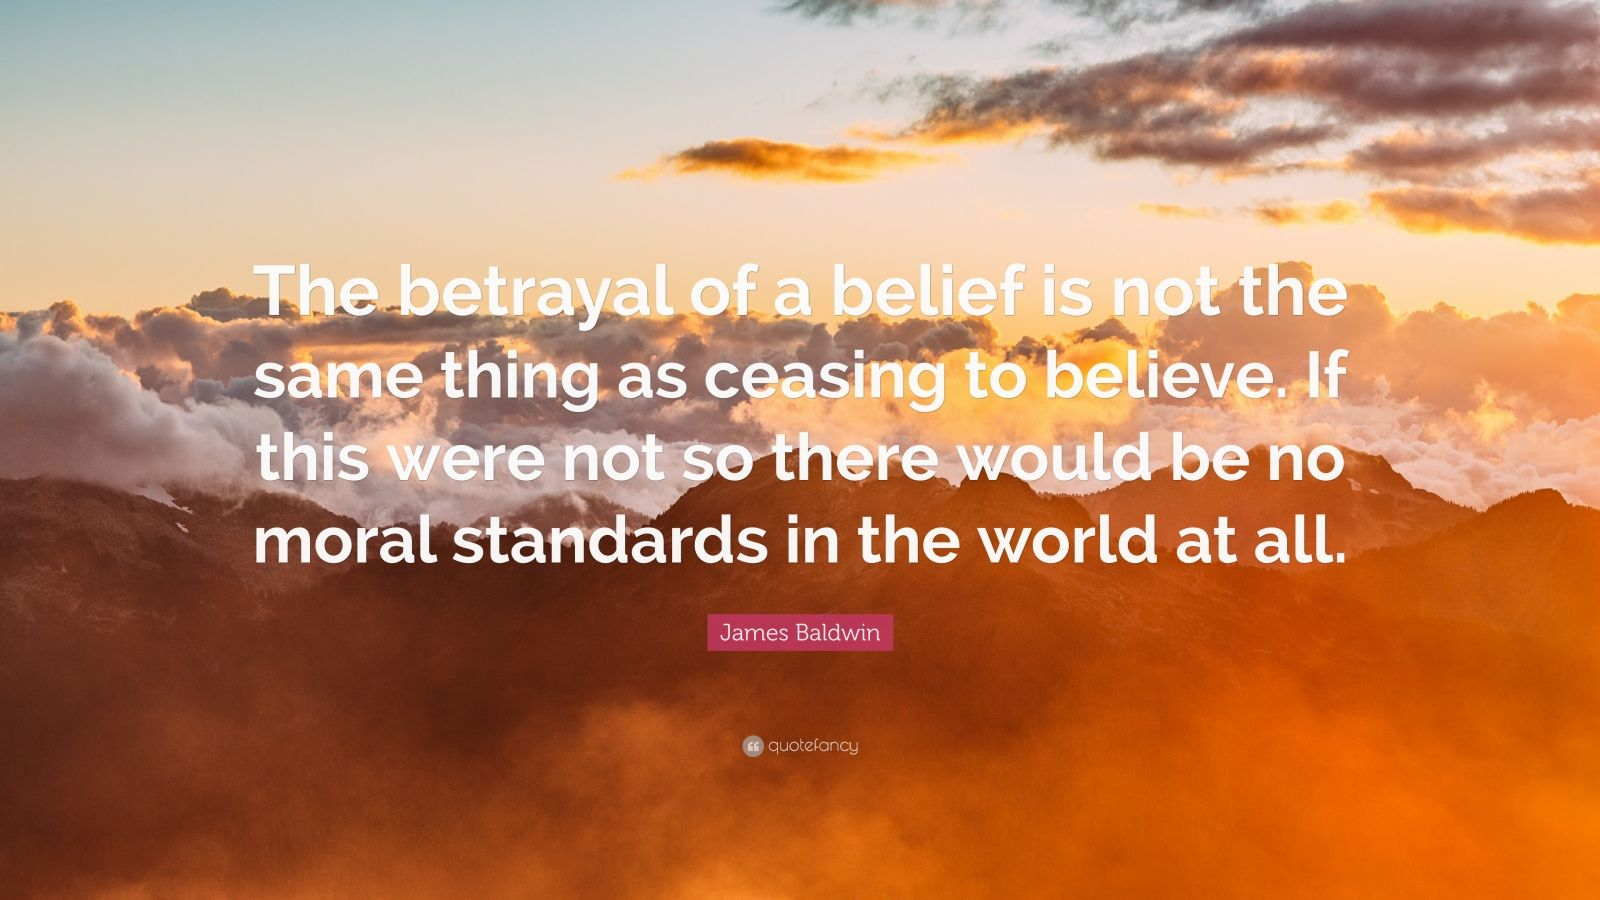 """James Baldwin Quote: """"The betrayal of a belief is not the same thing as ceasing to believe. If this were not so there would be no moral standards in the world at all."""""""